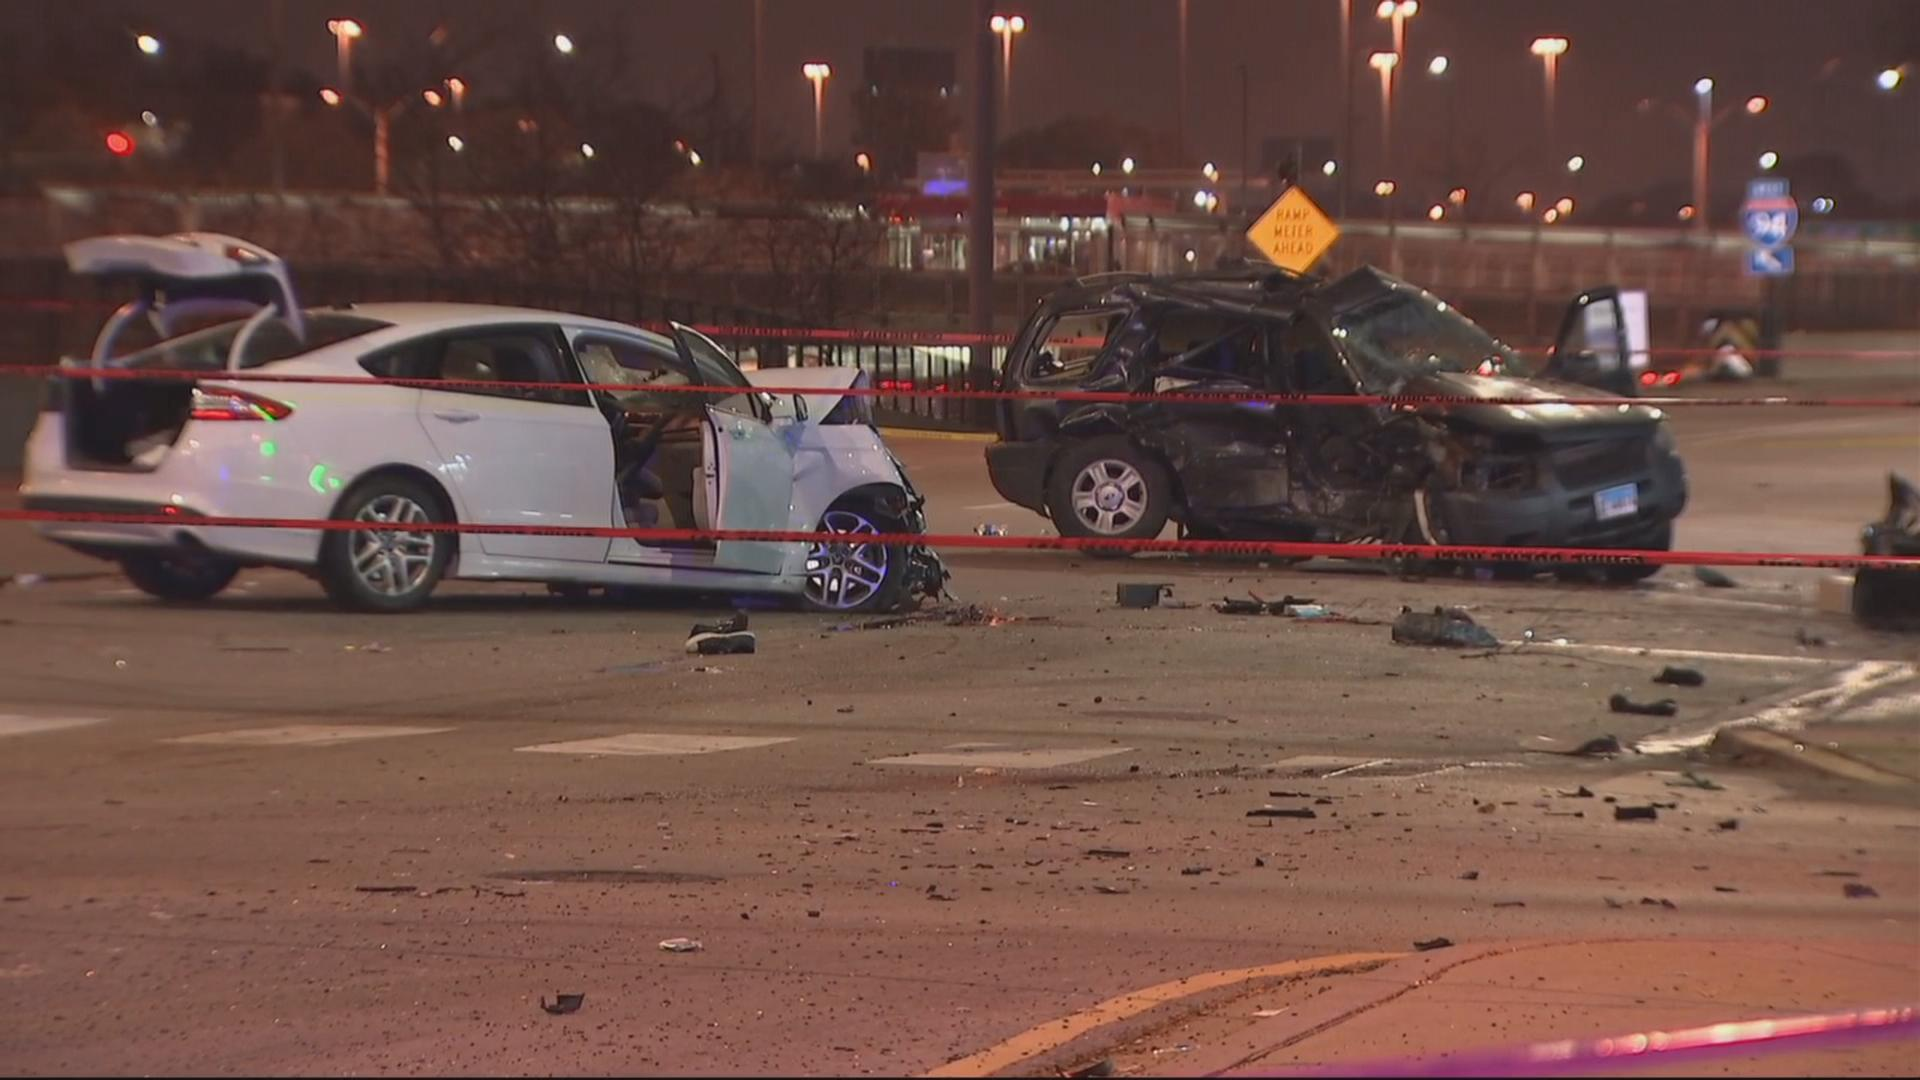 2 Killed in Hit-and-Run Crash on Chicagos South Side